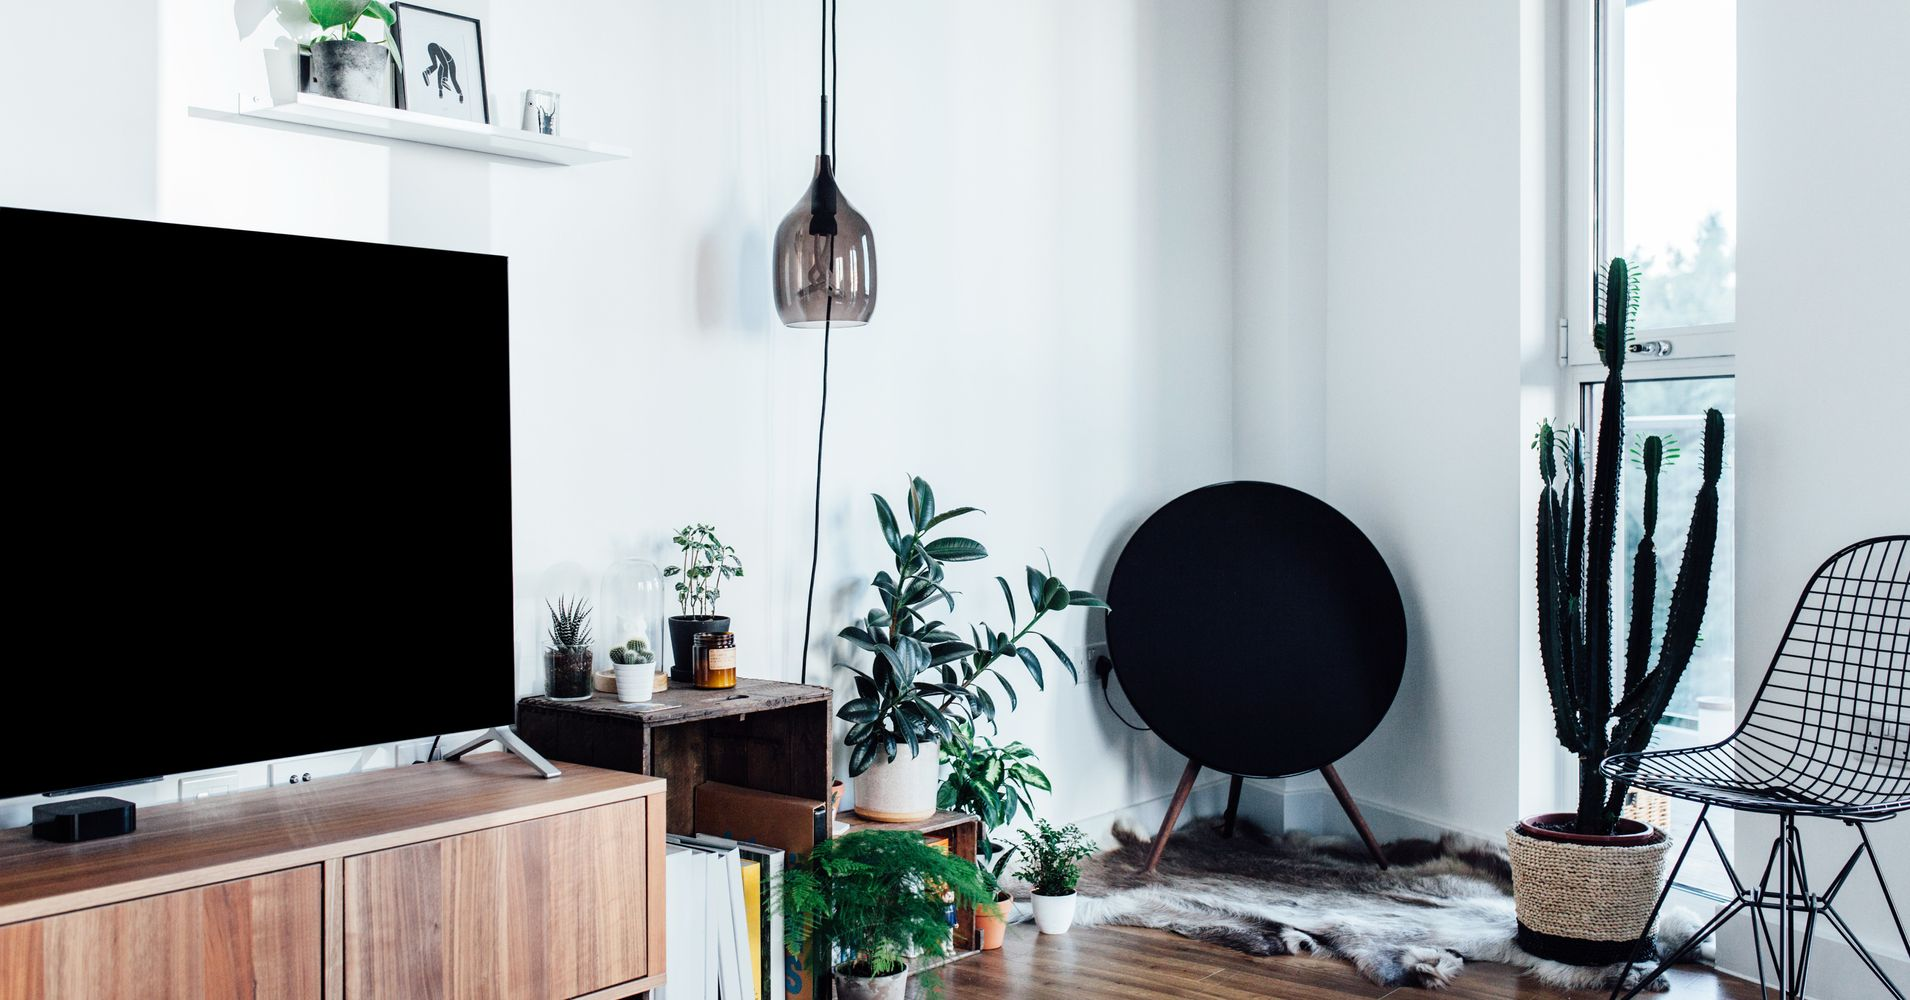 The 24 best websites for discount furniture and decor huffpost life